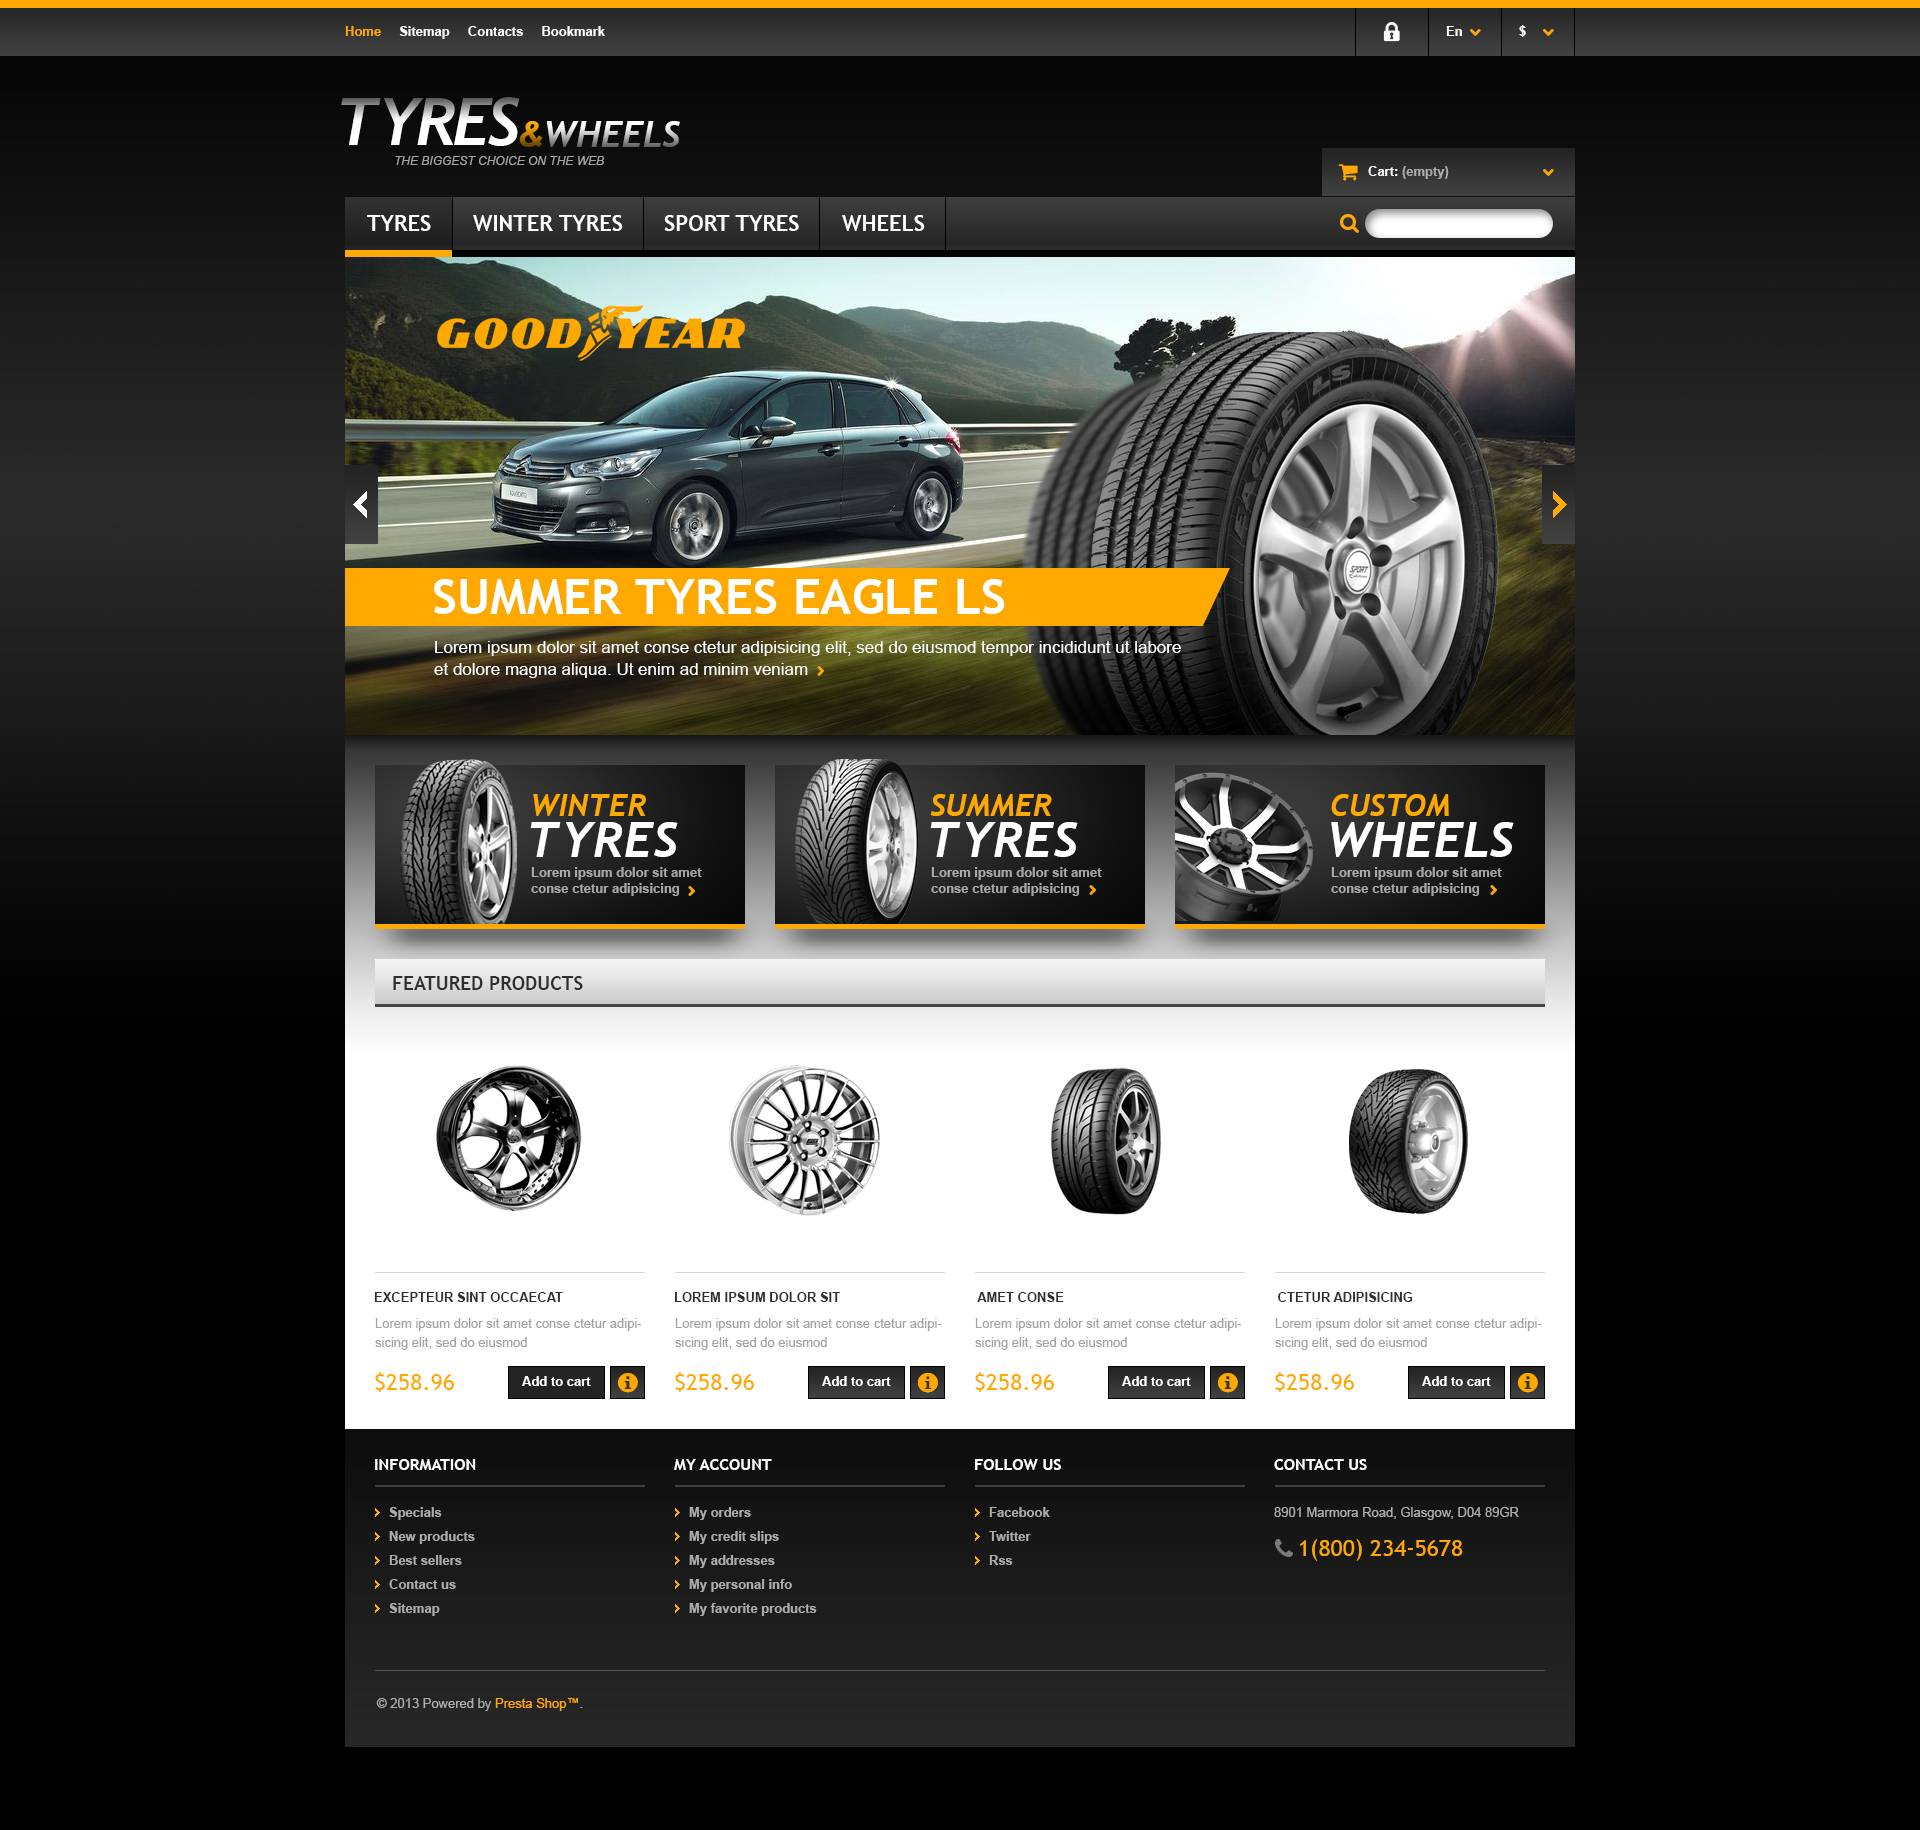 Gmail themes free online - Tyres Wheels Store